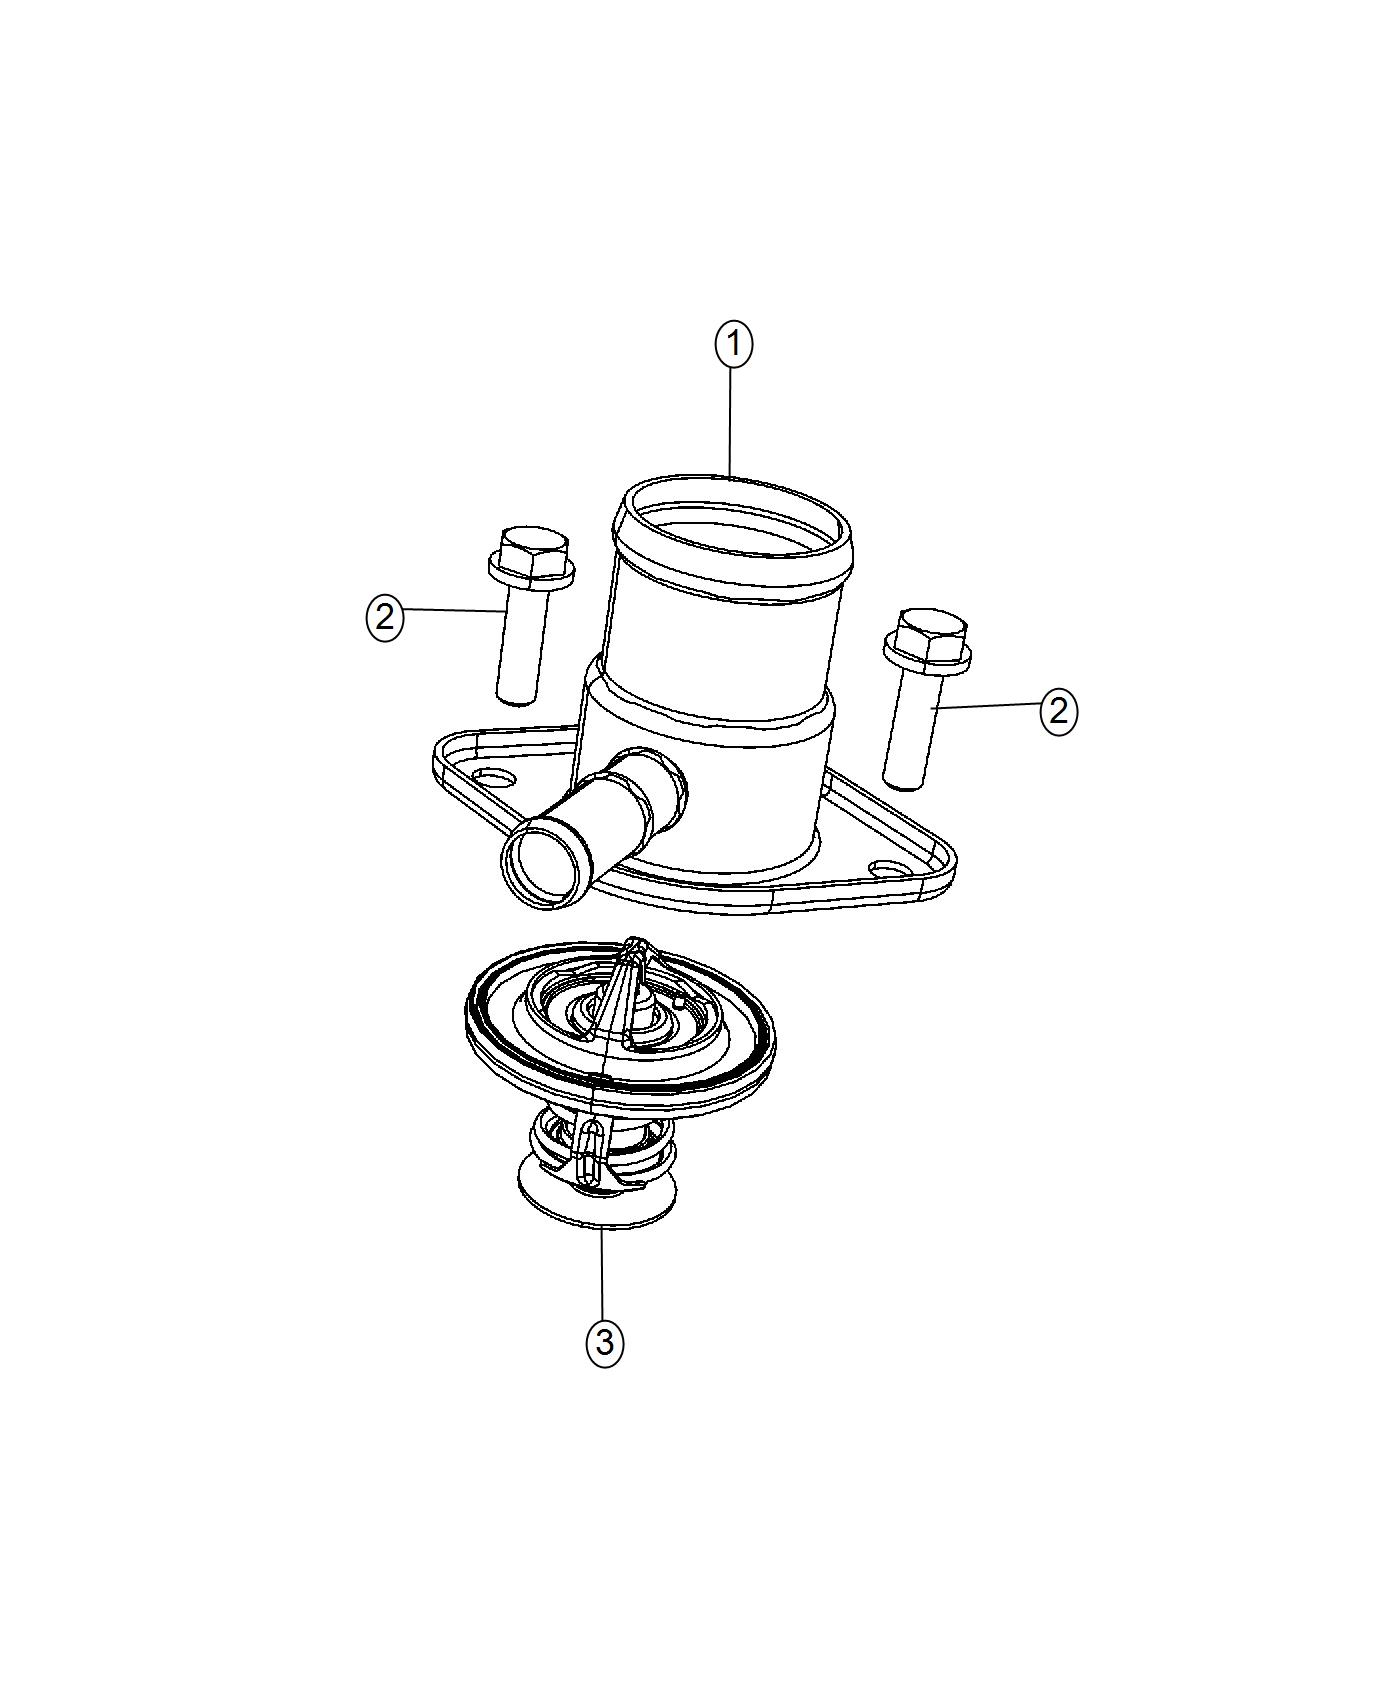 Dodge Charger Housing Thermostat Related Water Pump